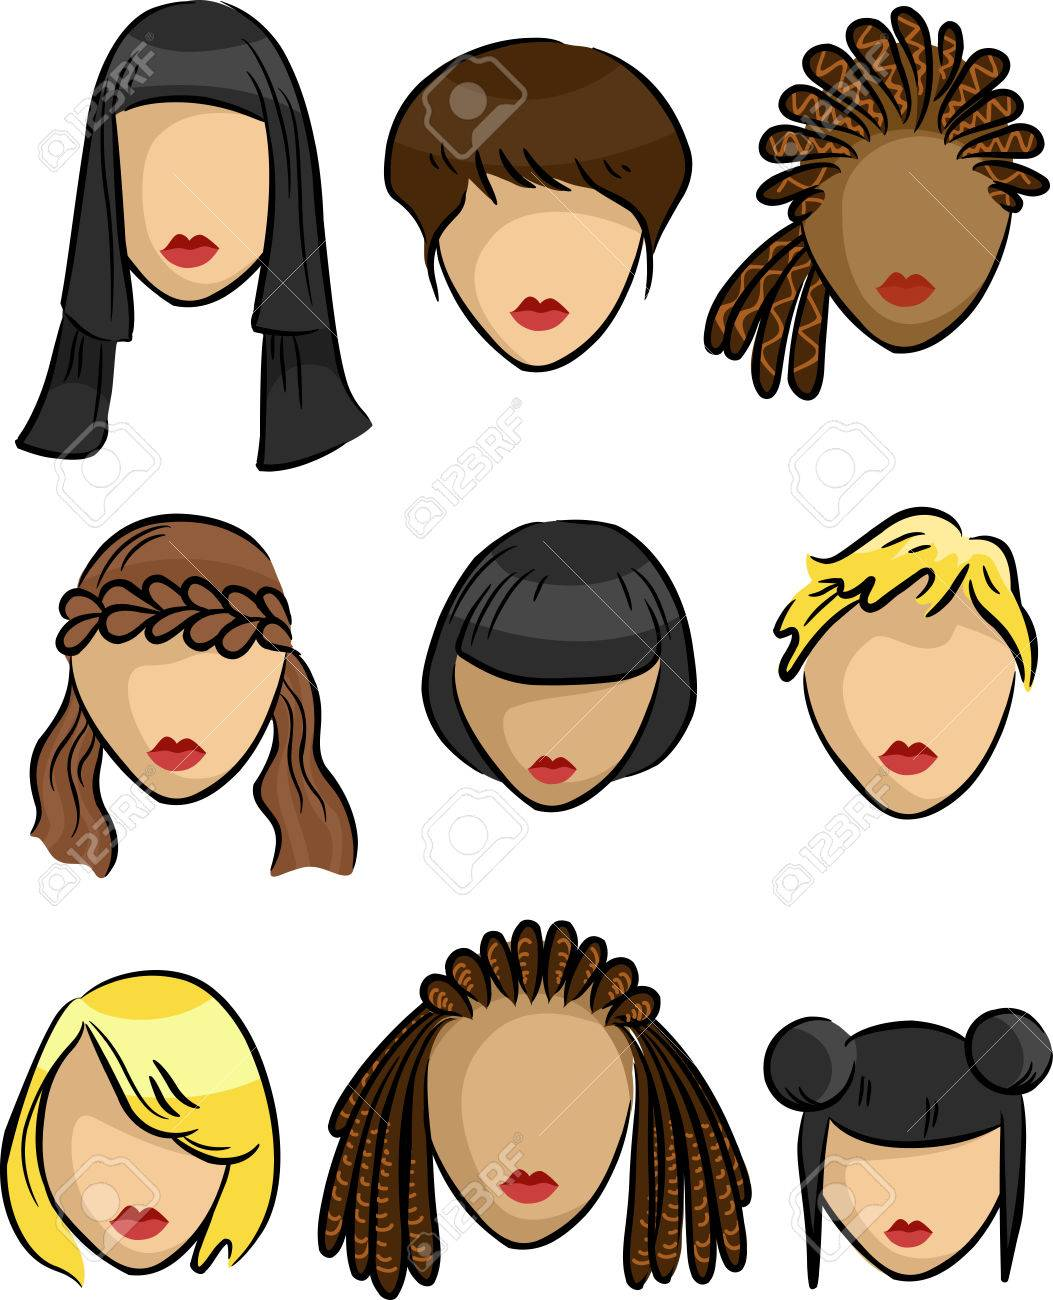 Grouped Illustration Featuring Samples Of Hairstyles For Women ...